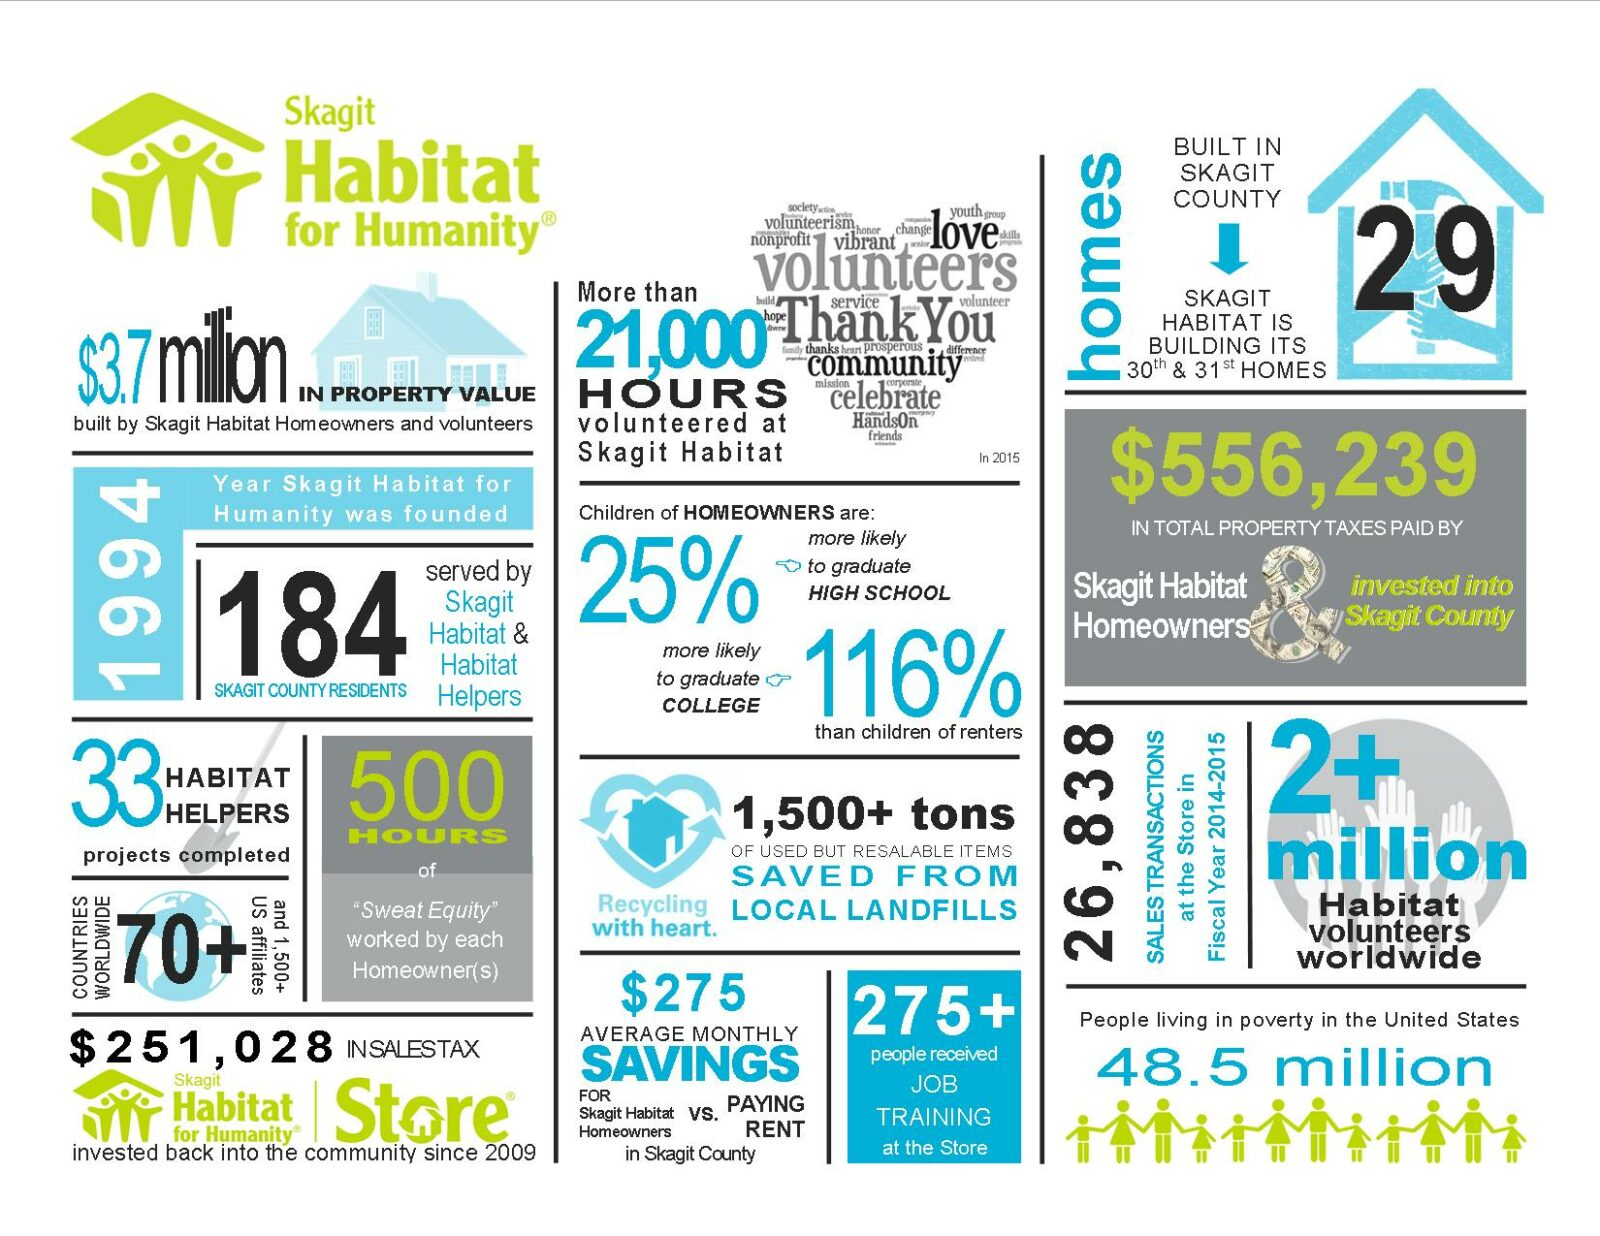 Skagit Habitat economic impact 2016